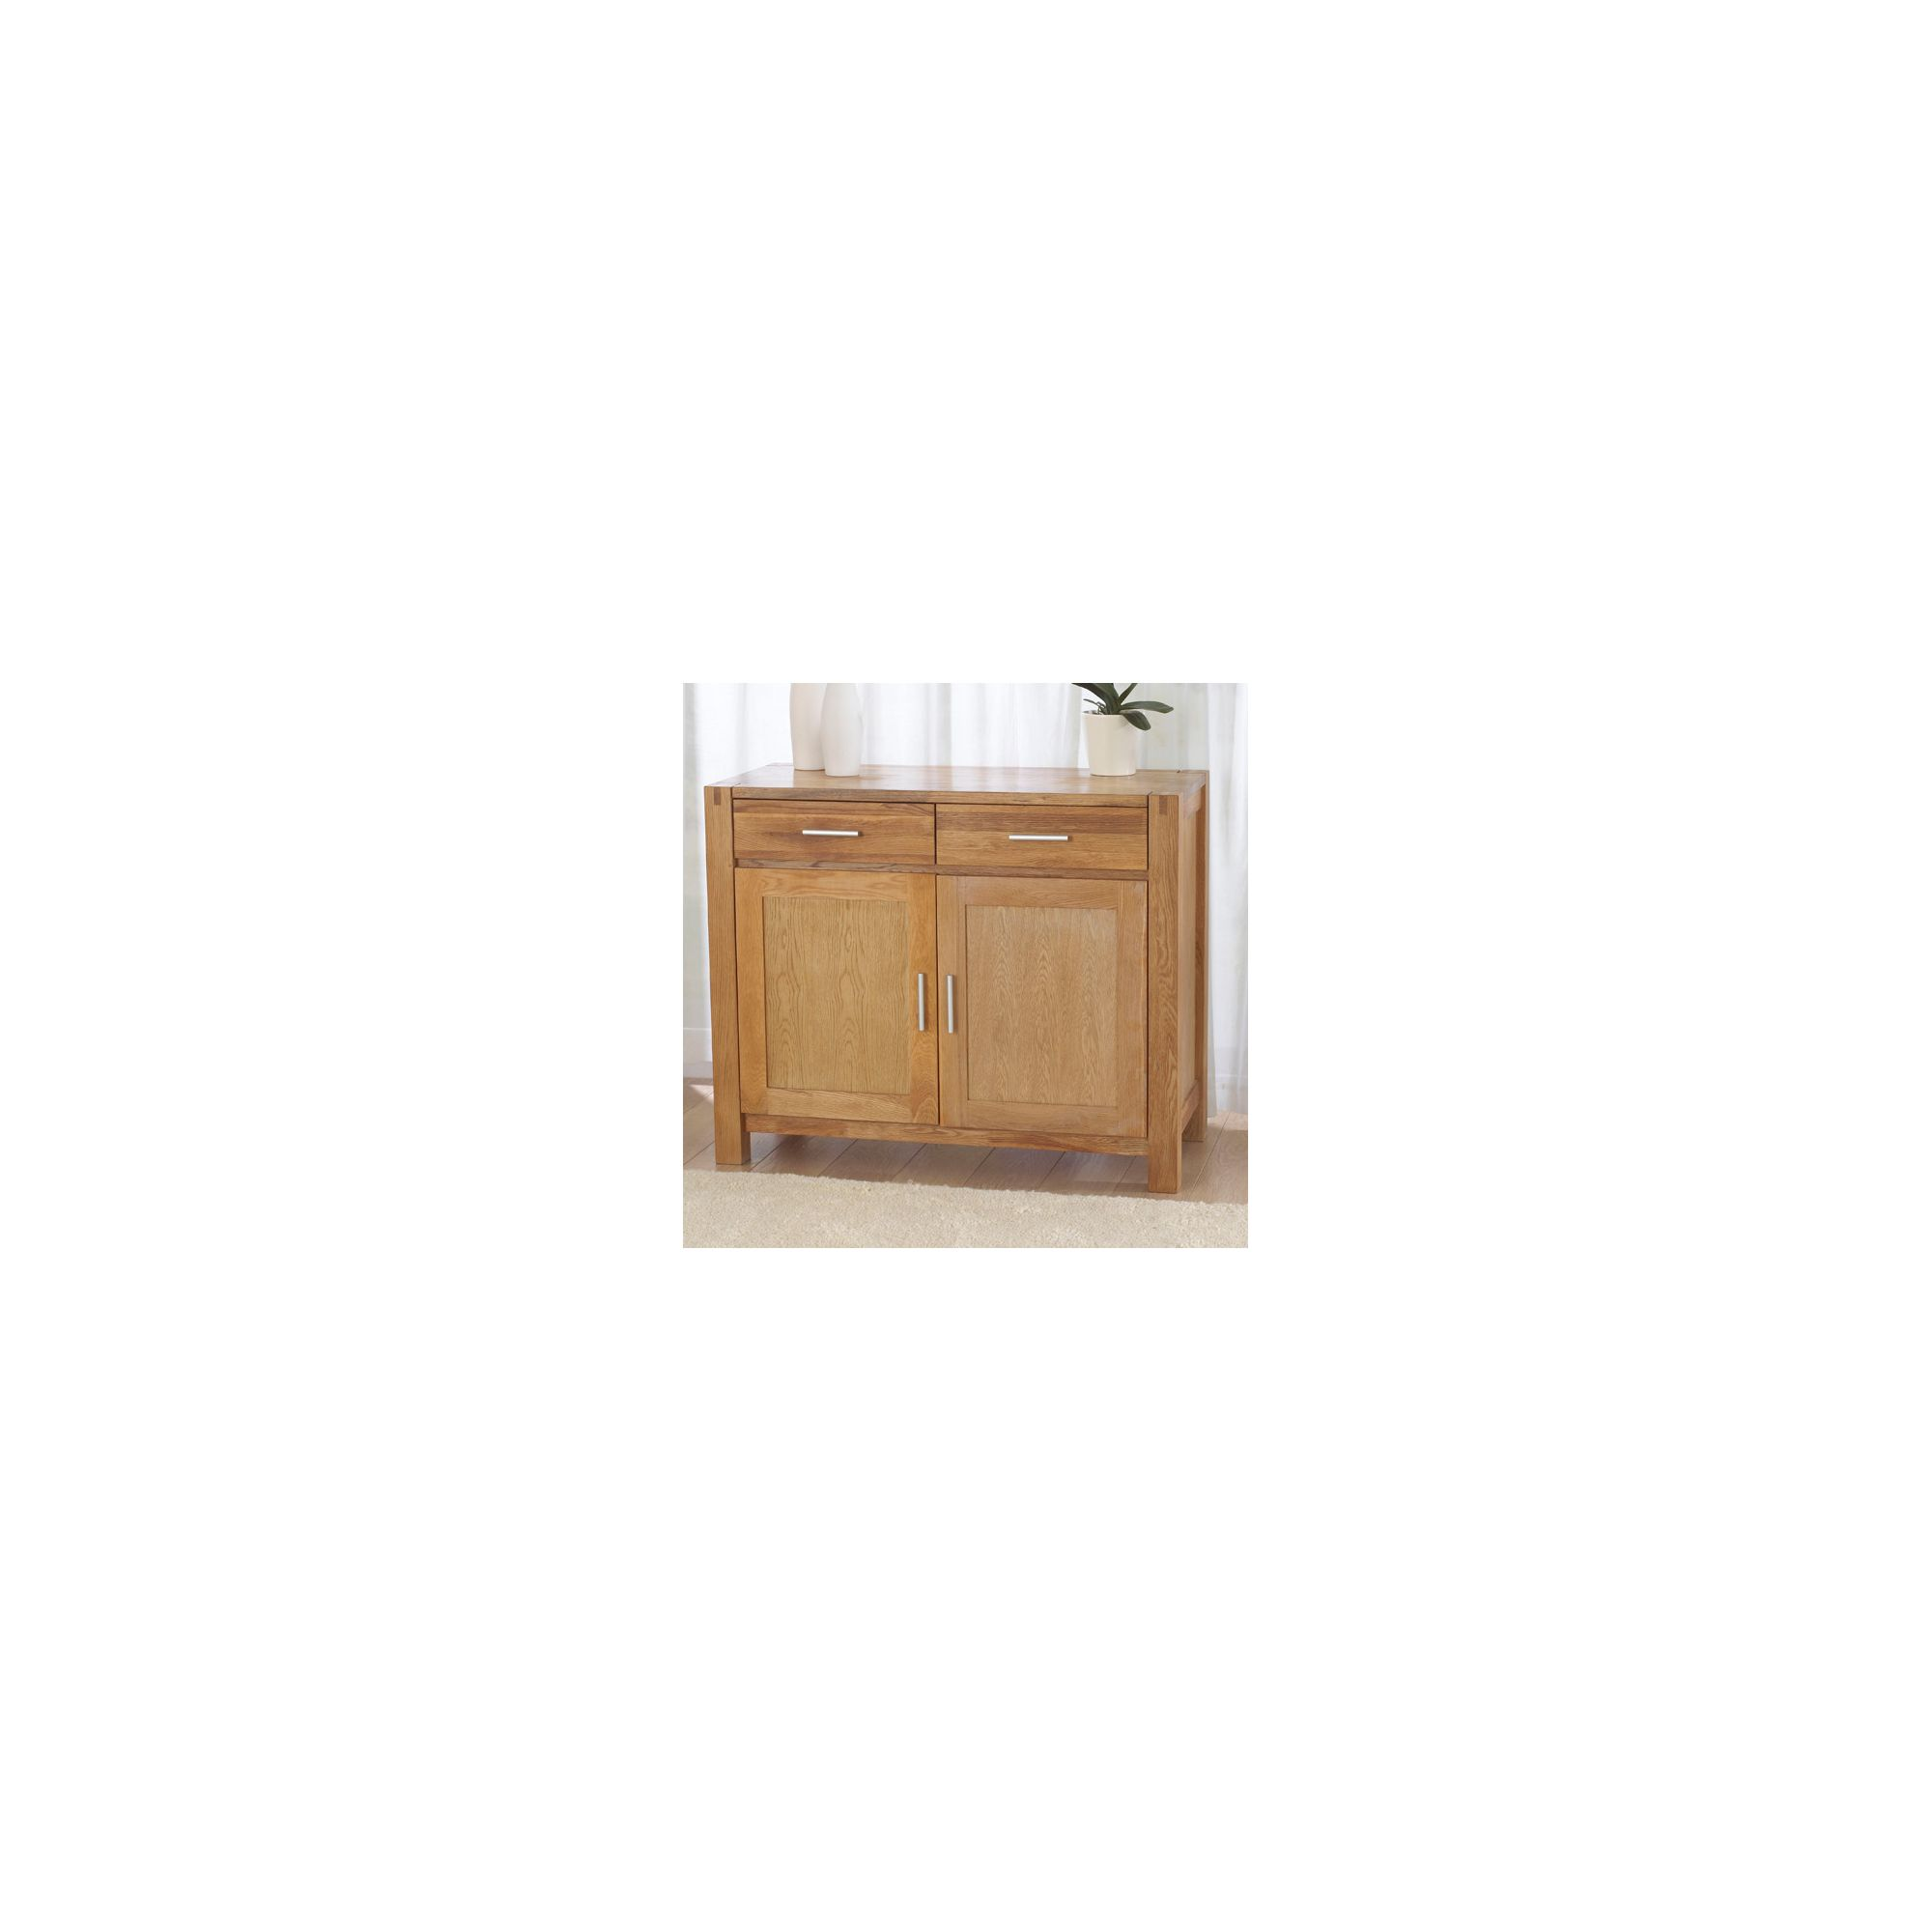 Mark Harris Furniture Verona Oak Sideboard - Medium at Tesco Direct